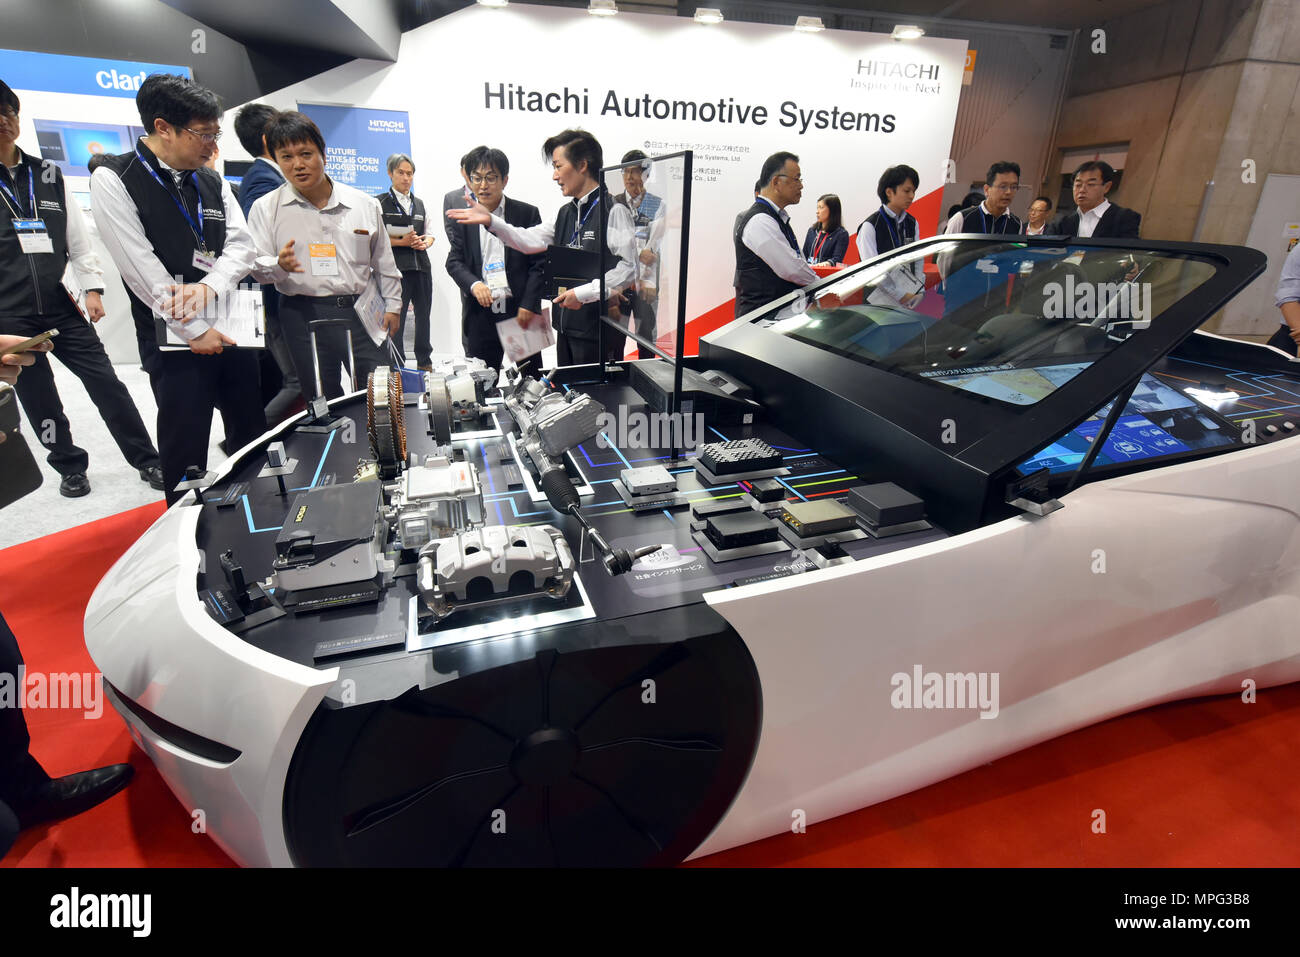 Vehicle Manufacturers In Japan Yokohama Japan 23rd May 2018 The Automotive Engineering